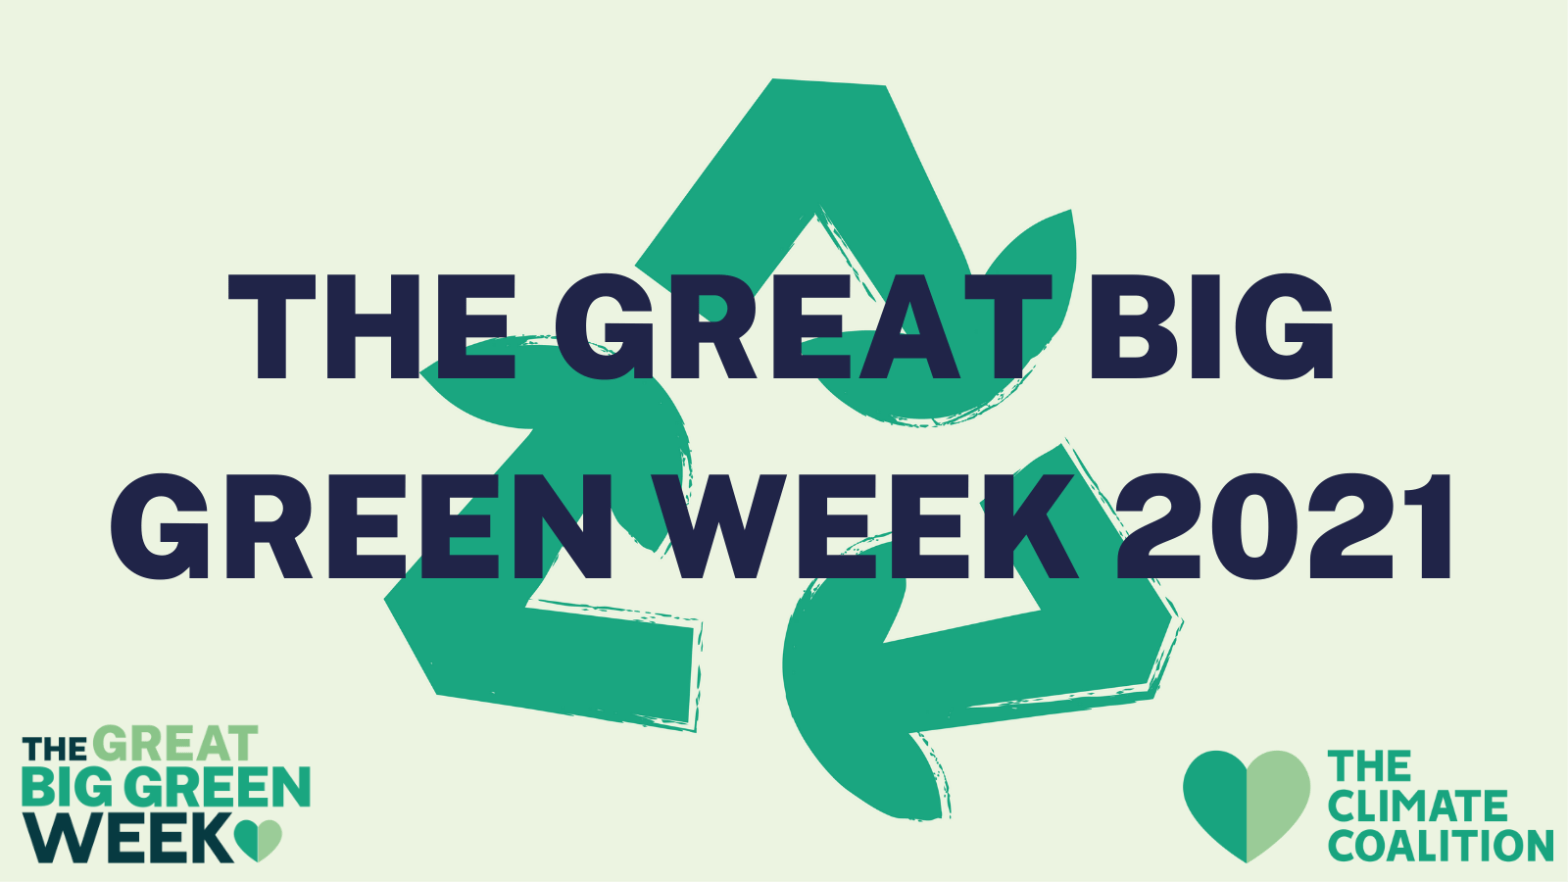 Cream Background with green recycling logo. 'The Great Big Green Week' title across the middle.